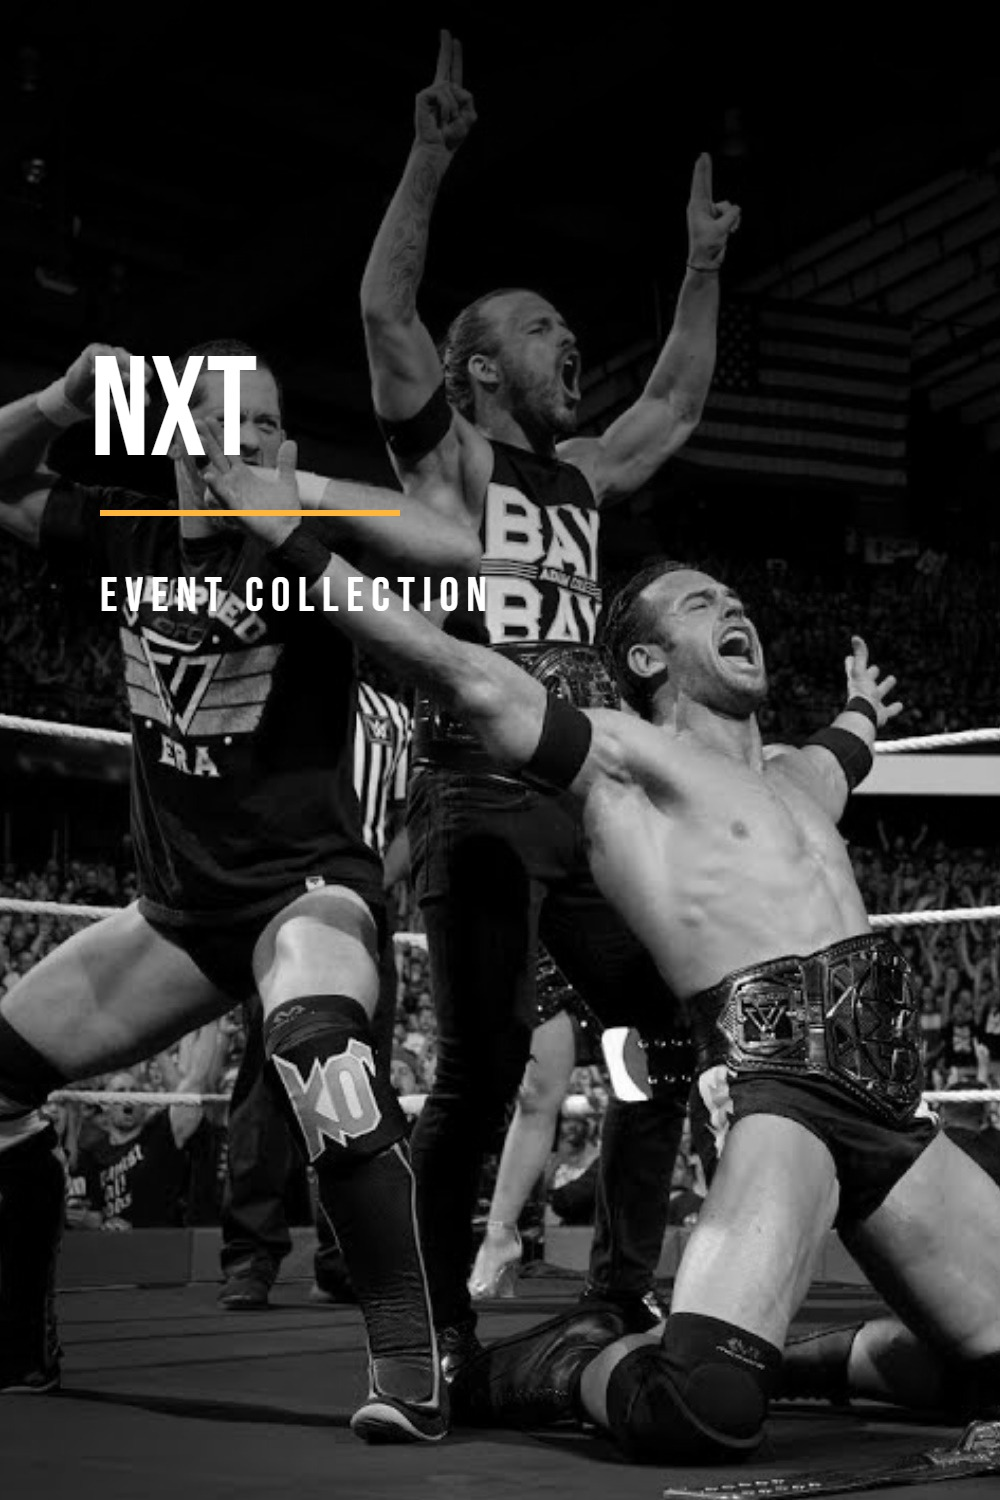 5d43a2c00e4ed_WWENXTCollection.jpg